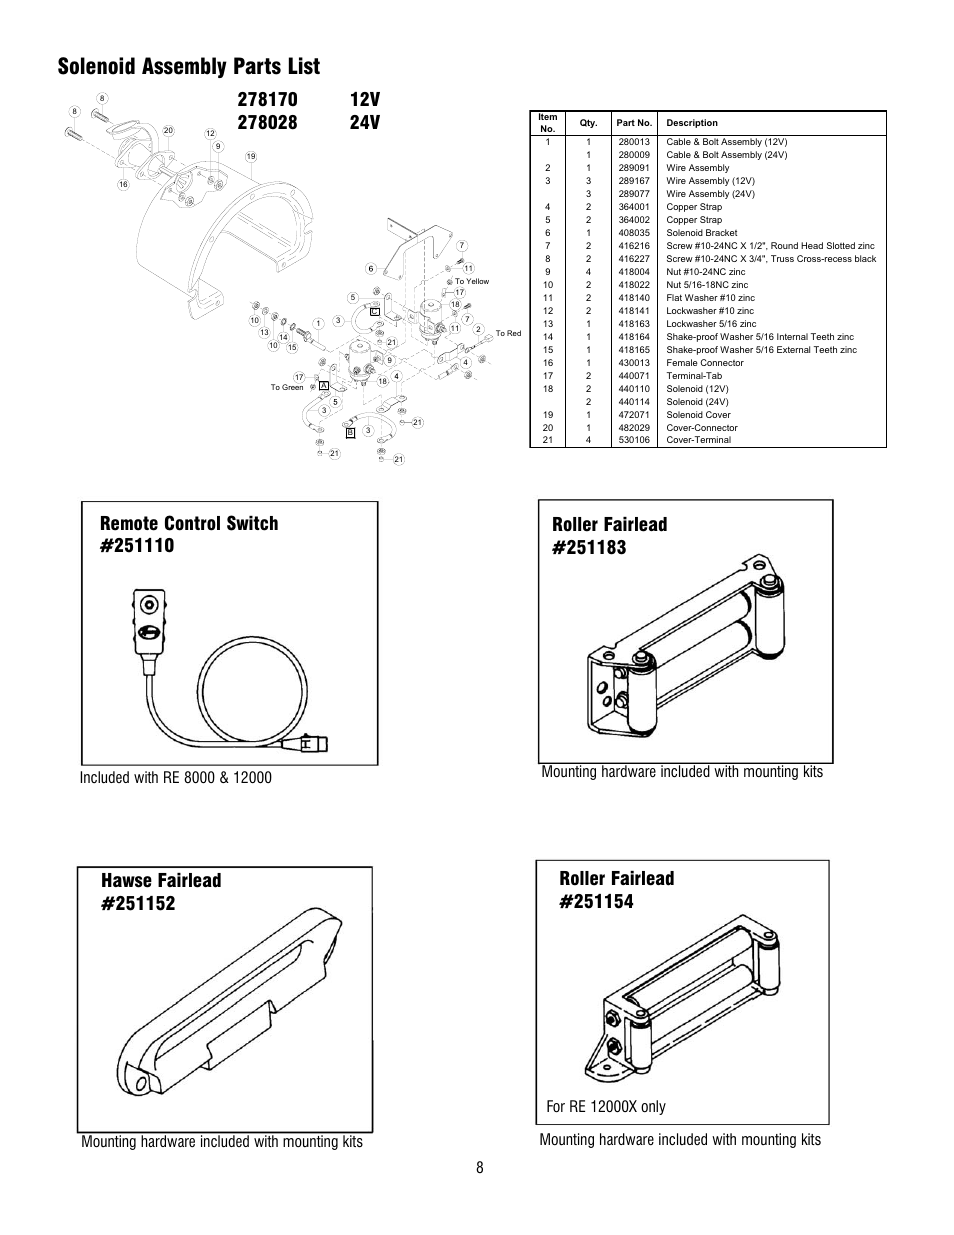 Solenoid assembly parts list, Mounting hardware included